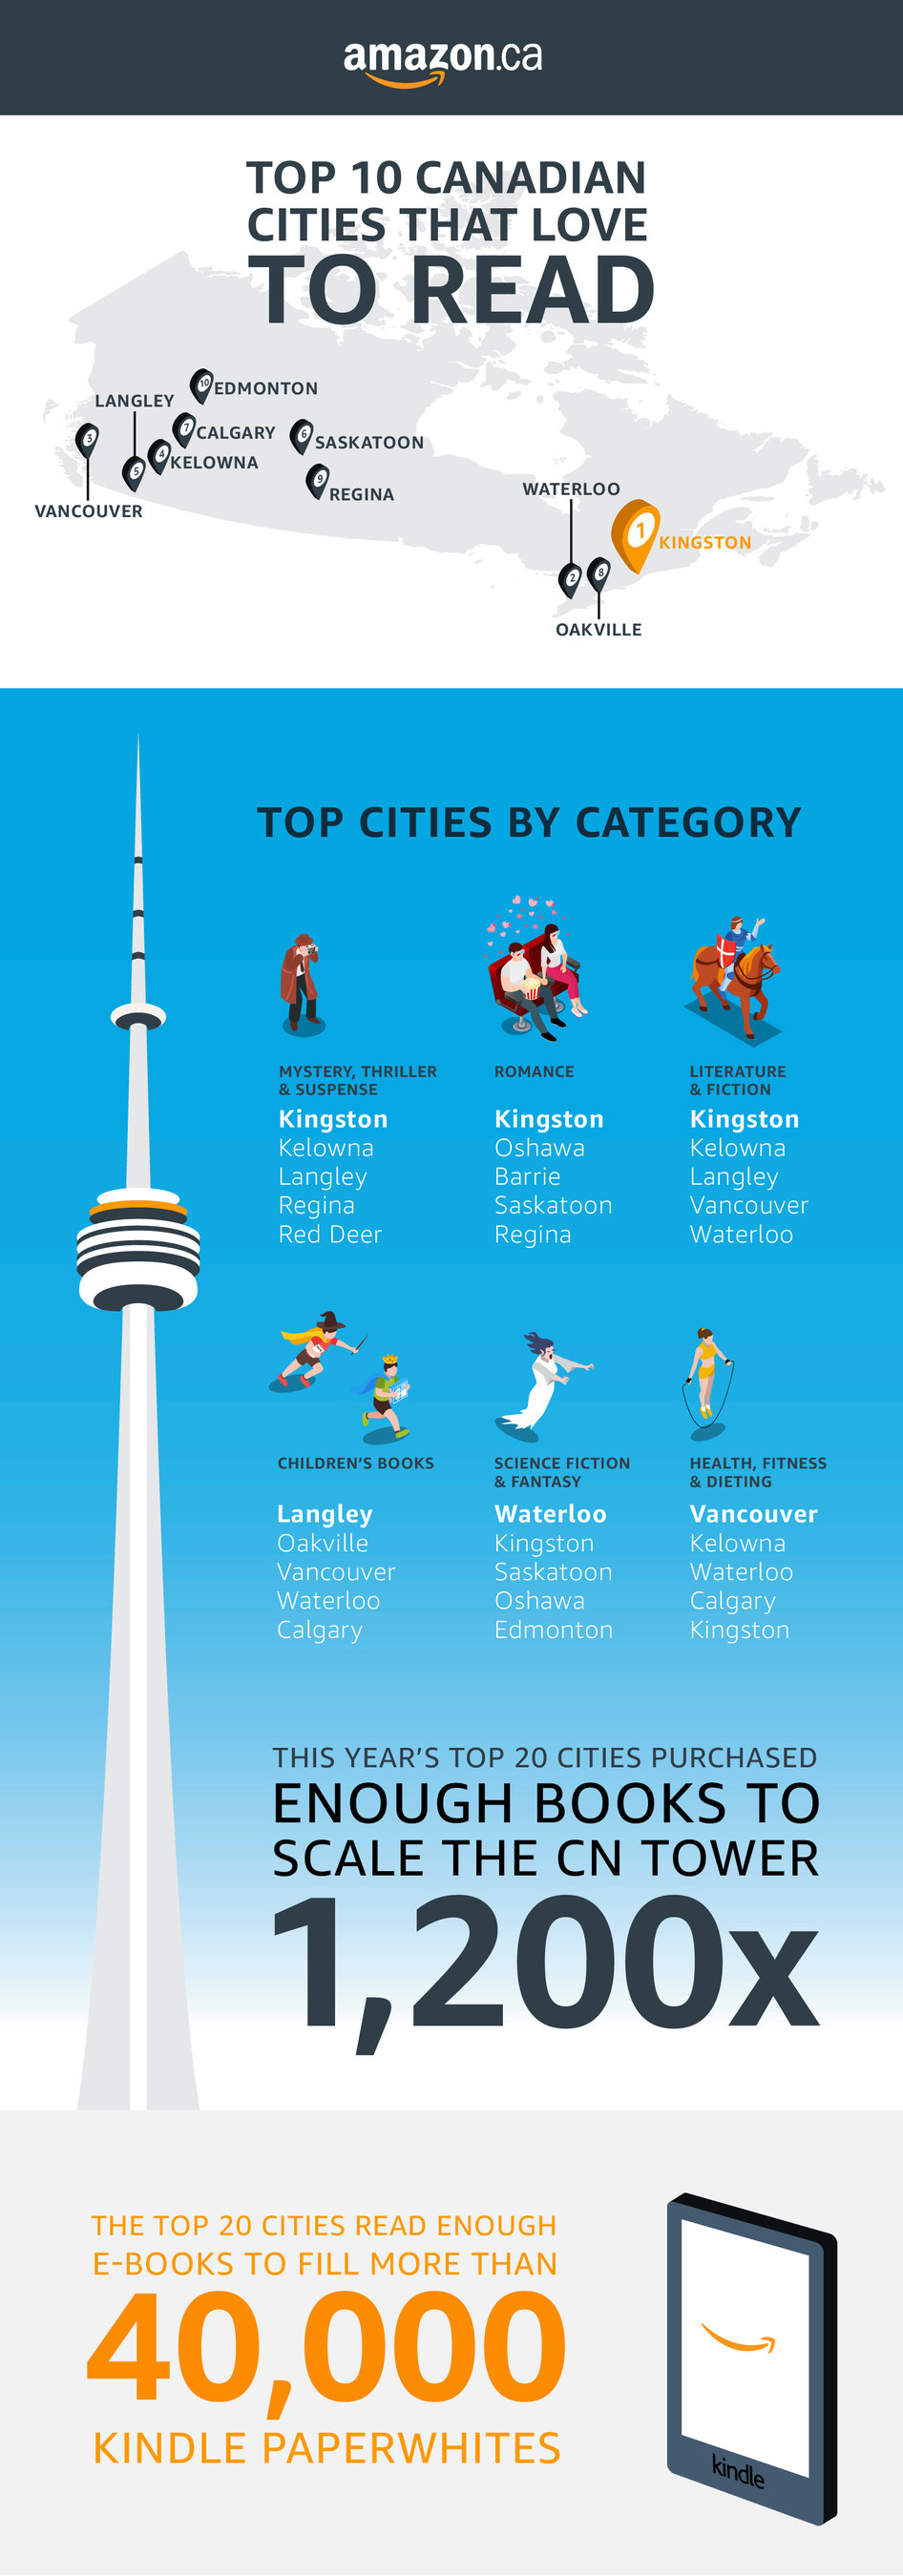 Amazon Canada: Canadian Cities that Love to Read 2018 (CNW Group/Amazon Canada)